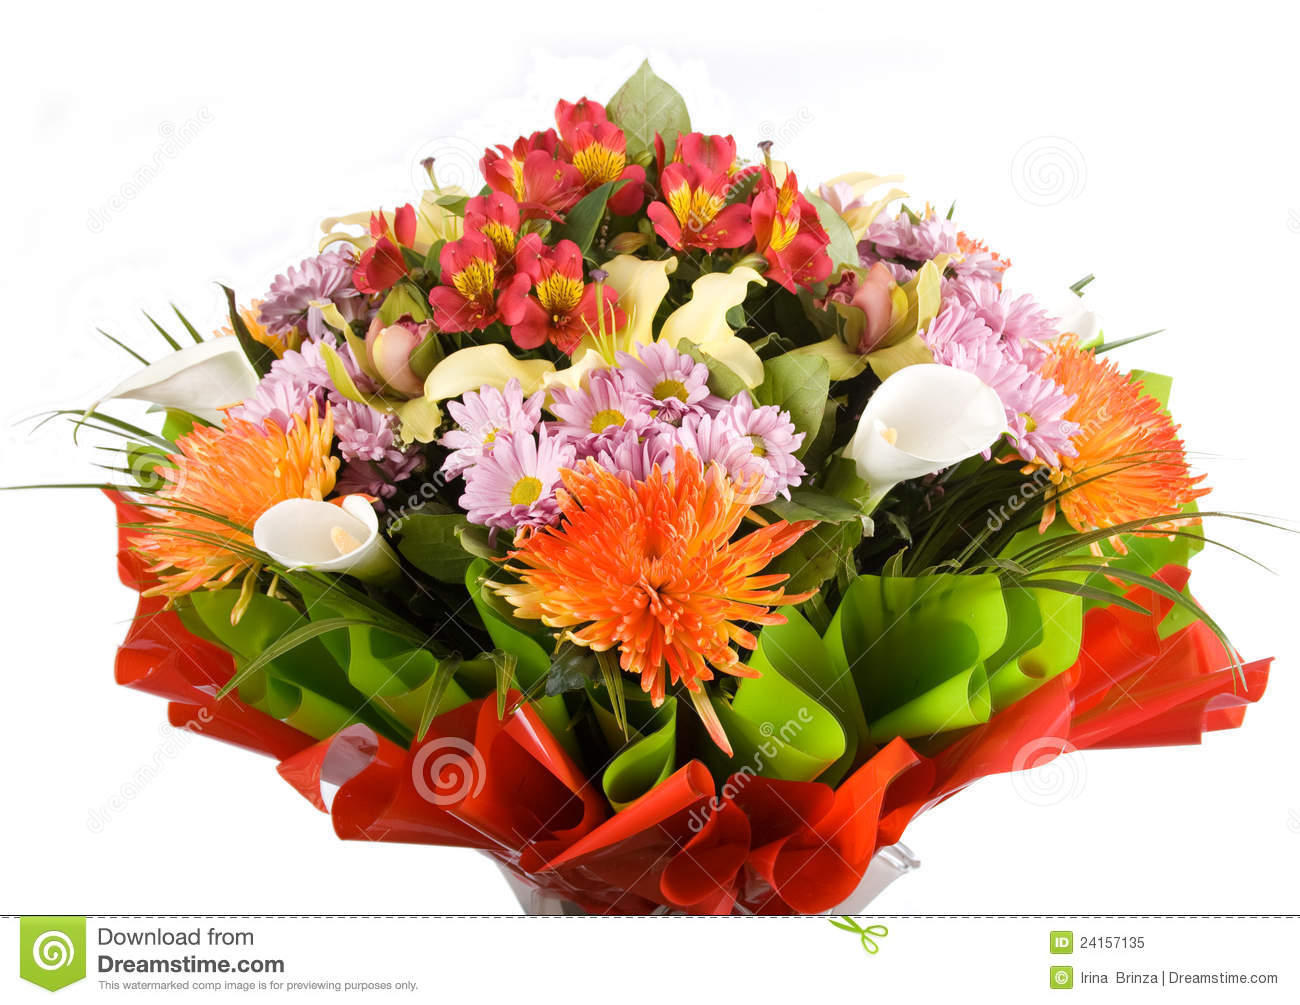 Big bouquet of flowers royalty free stock photo image 24157135 royalty free stock photo dhlflorist Gallery